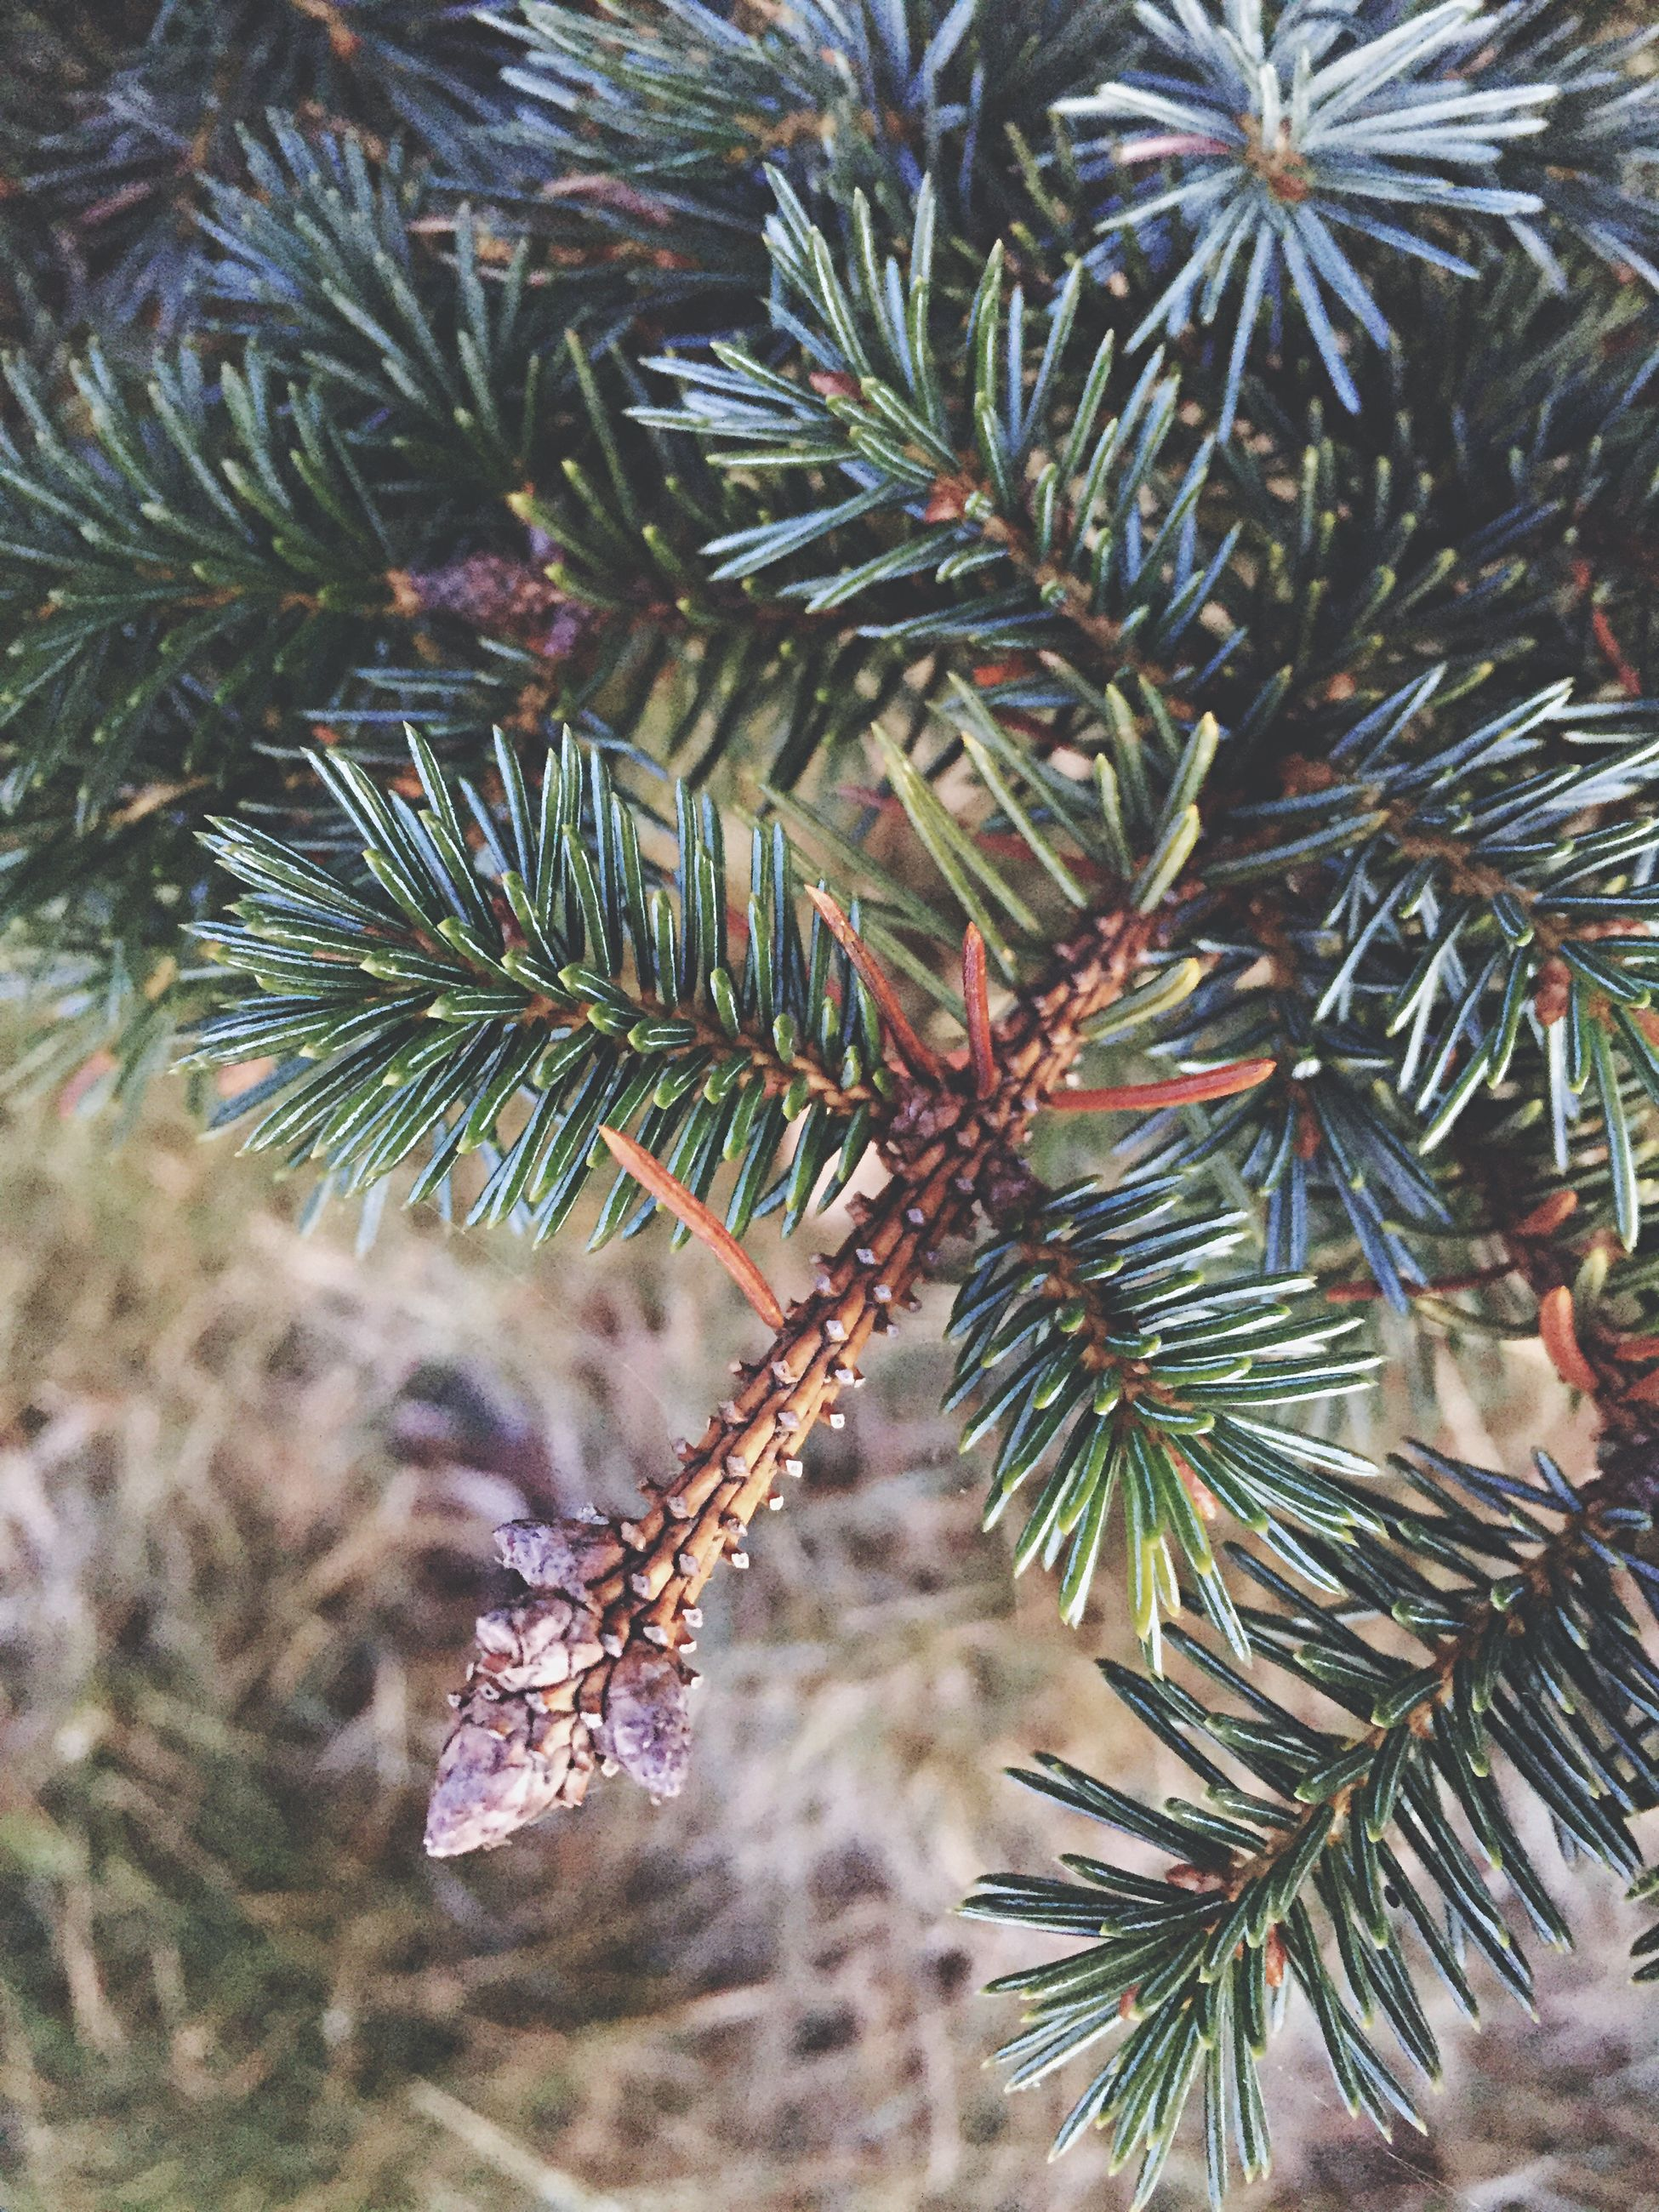 growth, nature, tree, plant, tranquility, close-up, beauty in nature, thorn, cactus, leaf, day, palm tree, branch, spiked, outdoors, growing, pine tree, no people, pine cone, focus on foreground